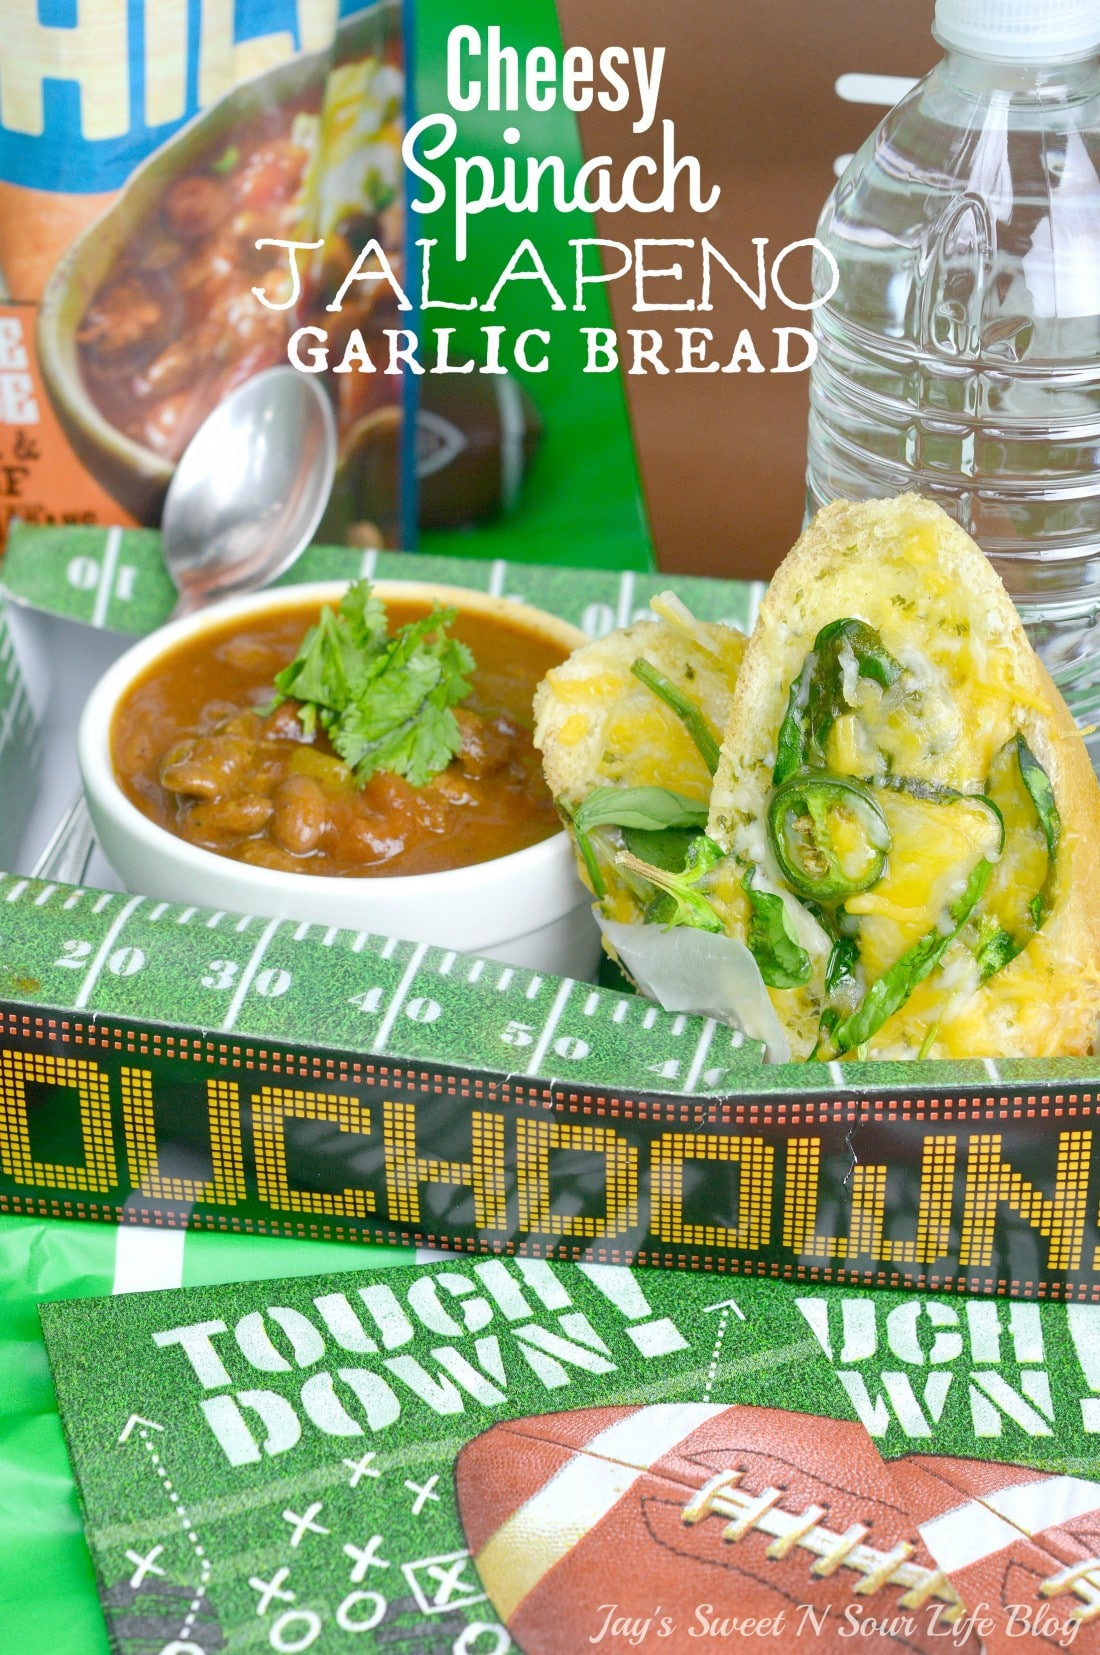 Cheesy Spinach Jalapeno Garlic Bread. This spicy yet creamy Cheesy Spinach Jalapeno Garlic Bread will make any game day a victory. Make ahead and serve on game day.